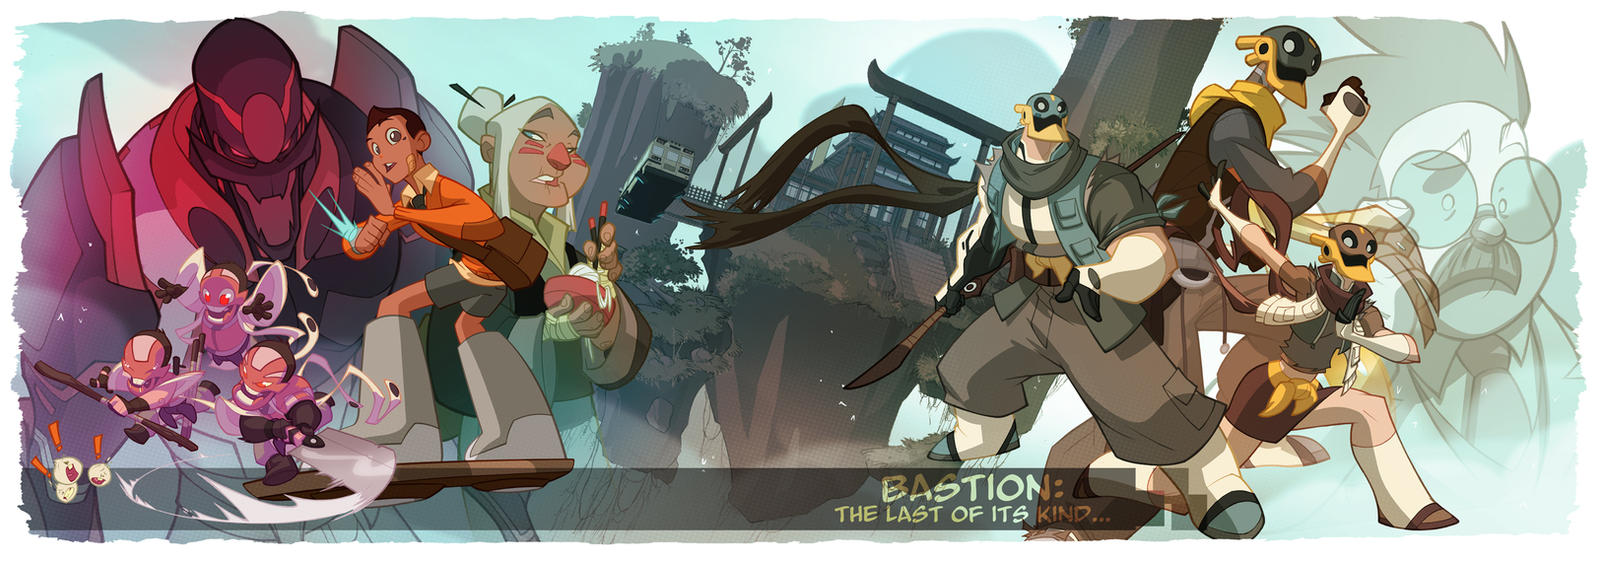 Bastion's 7 Kickstarter launches tomorrow! by cheeks-74